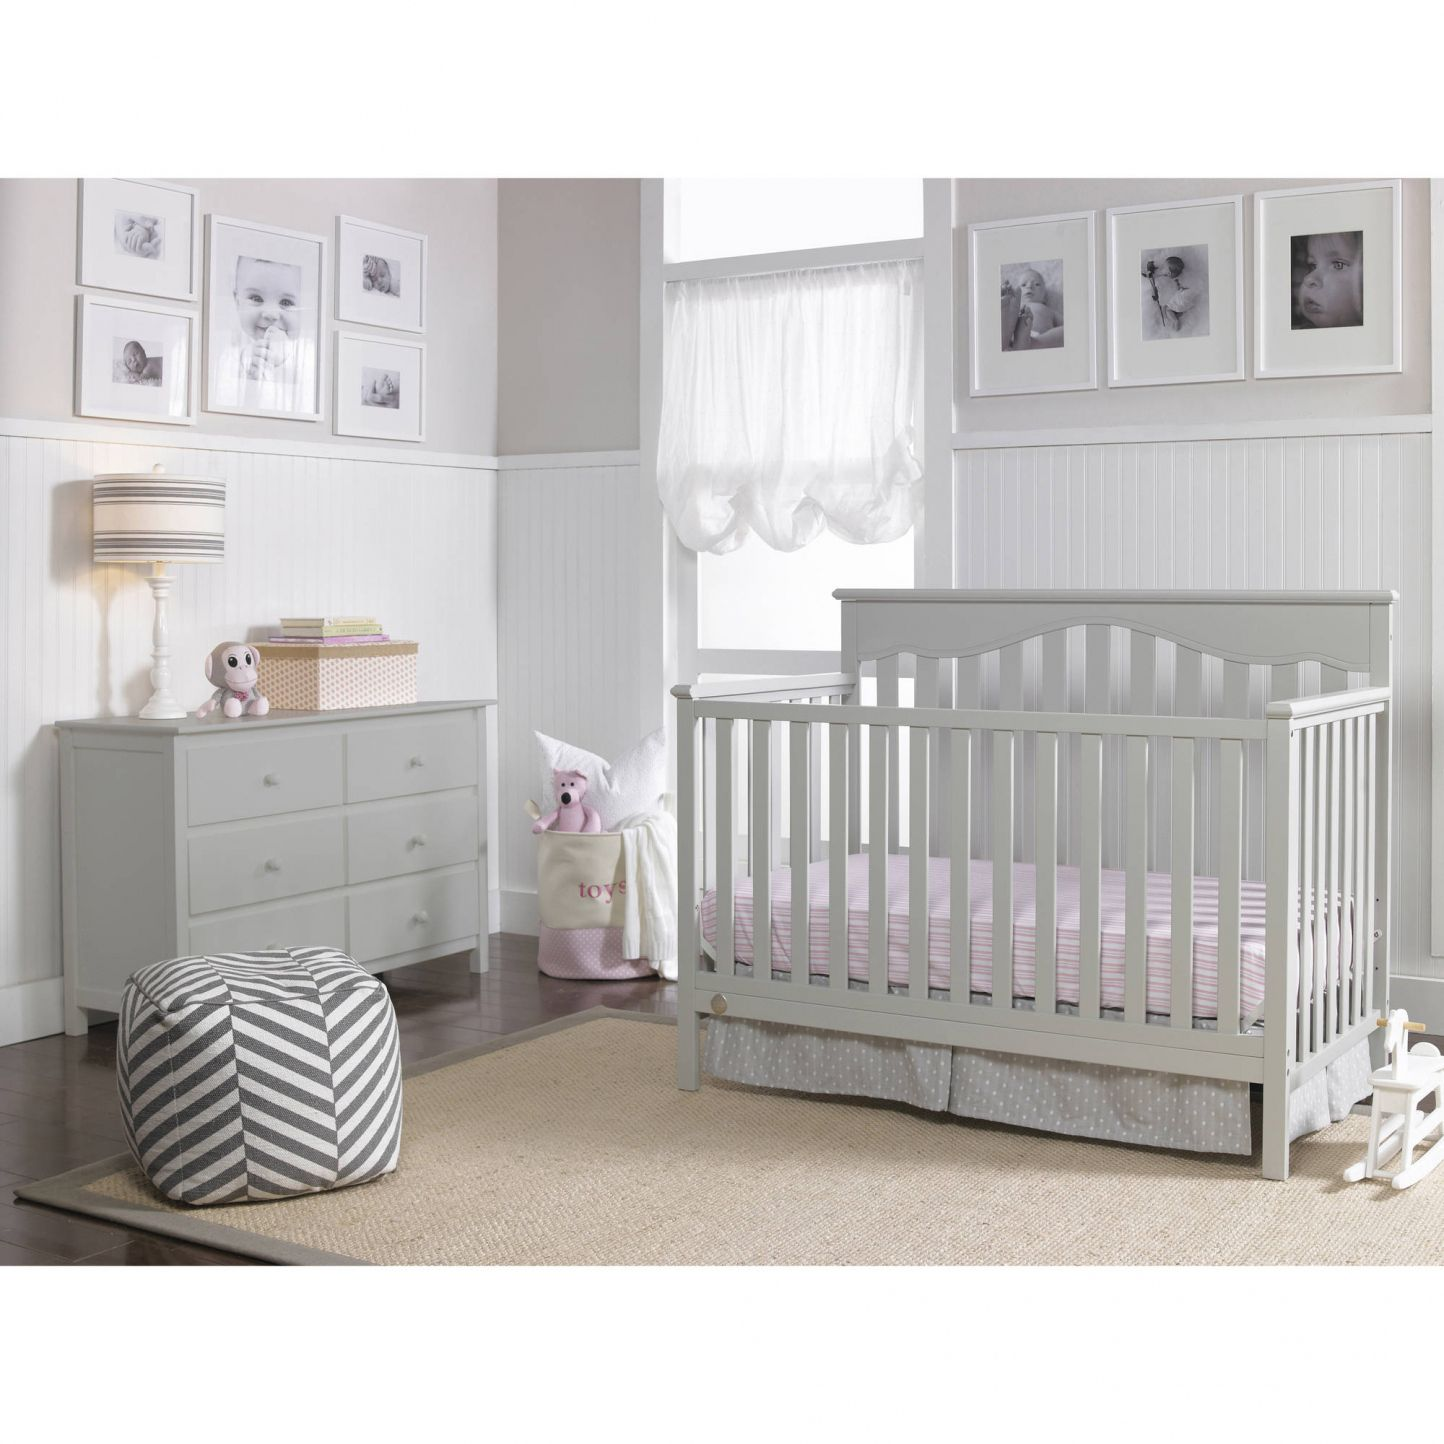 Costco Baby Furniture Sets Por Interior Paint Colors Check More At Http Www Chulaniphotography